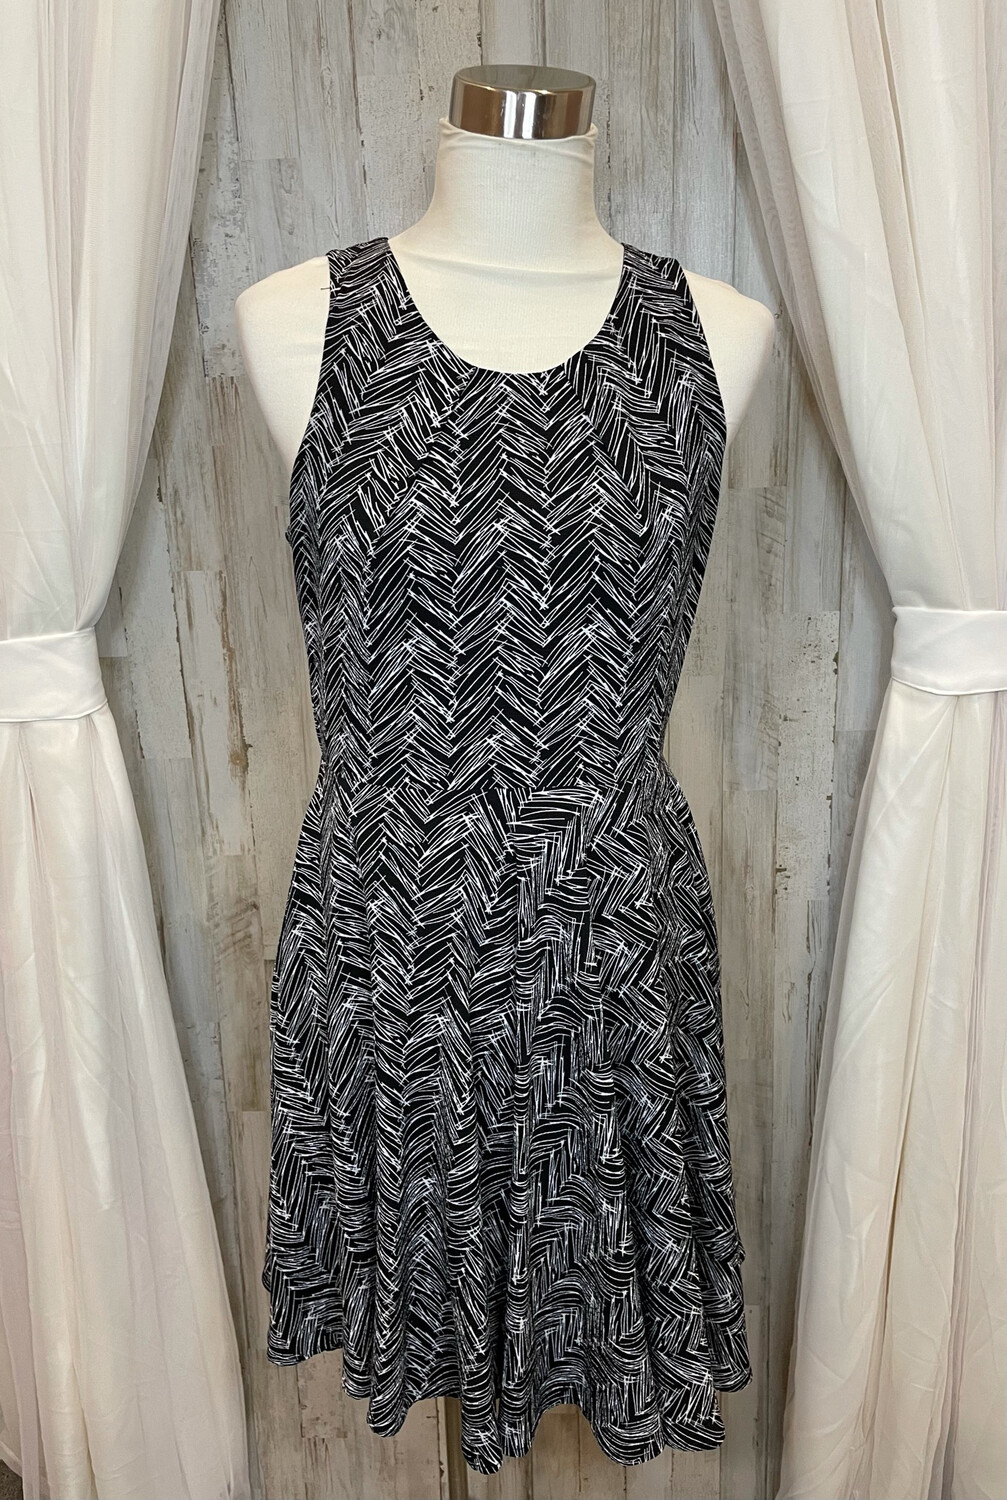 41 Hawthorn Black & White Patterned Tank Dress - M